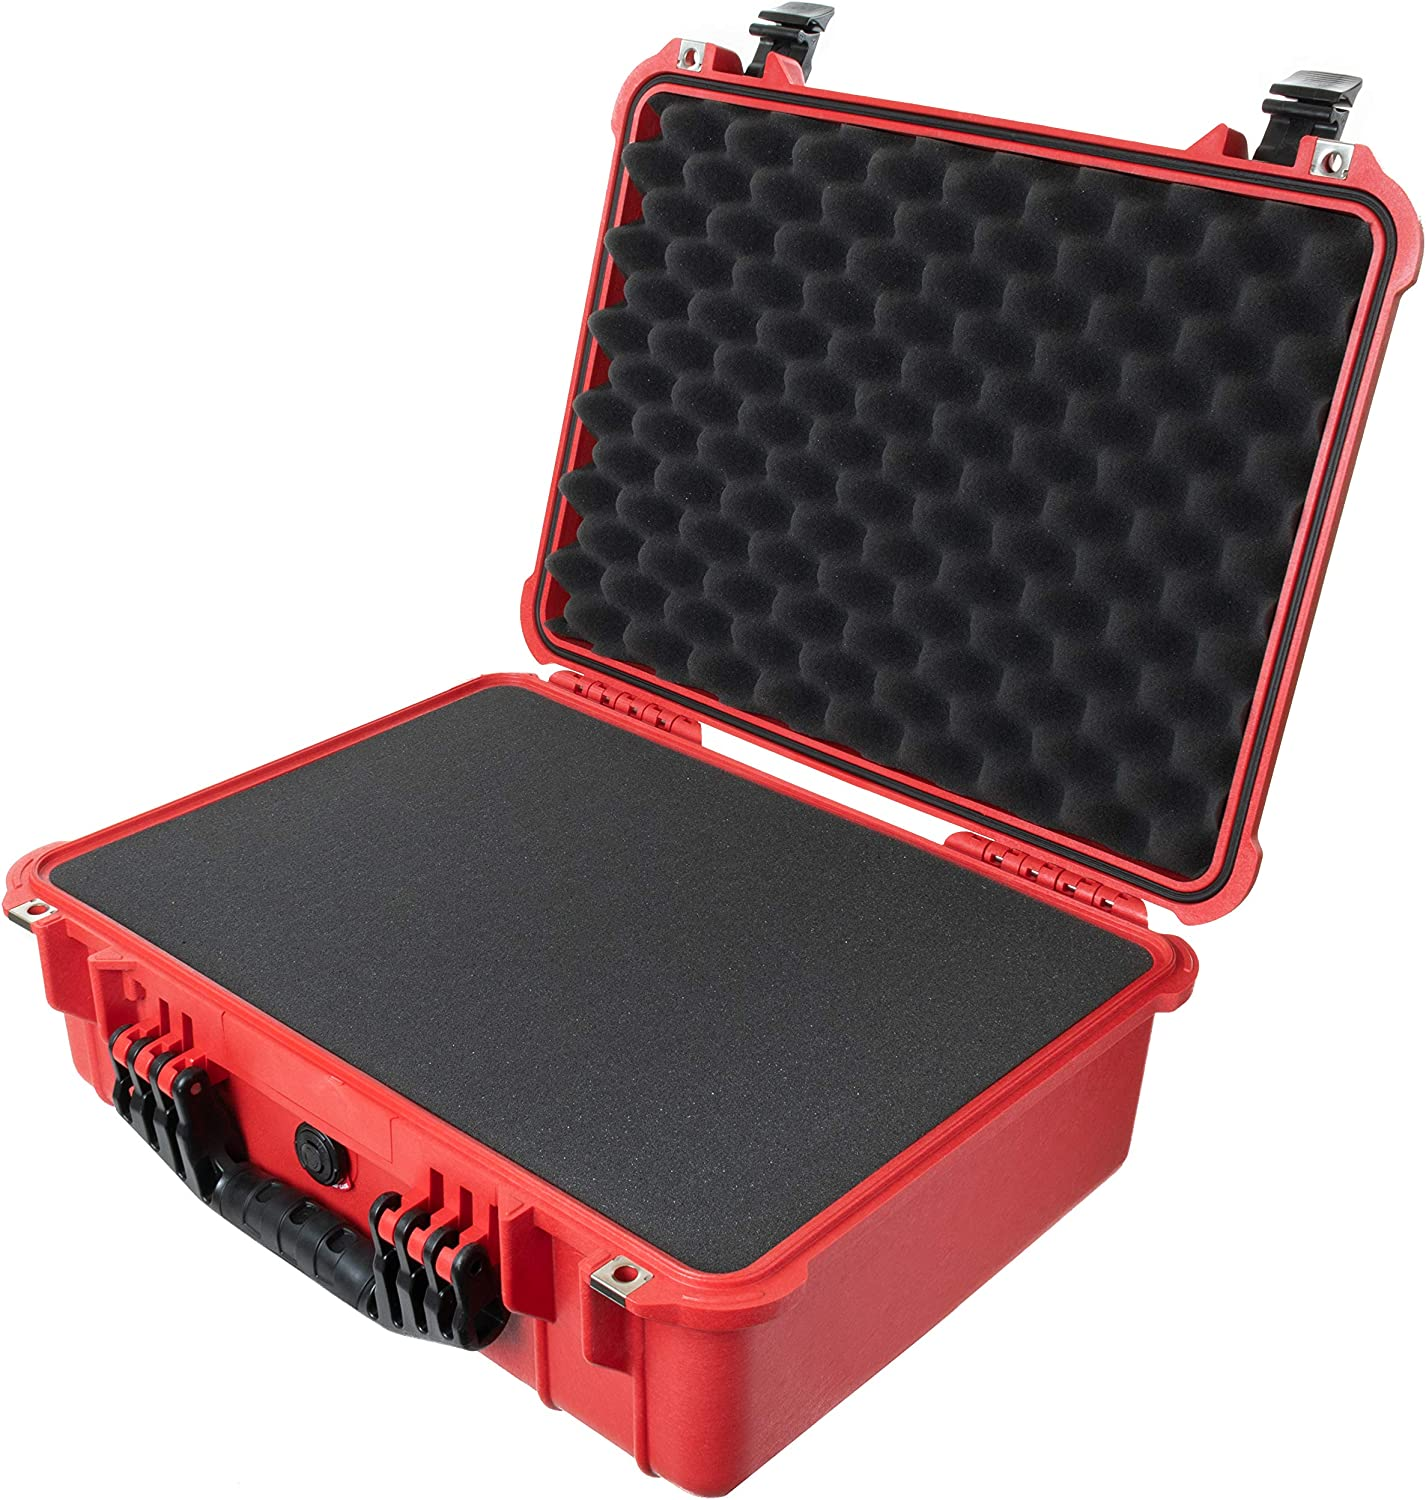 Pelican 1520 Red and Black Case with Pluck Foam